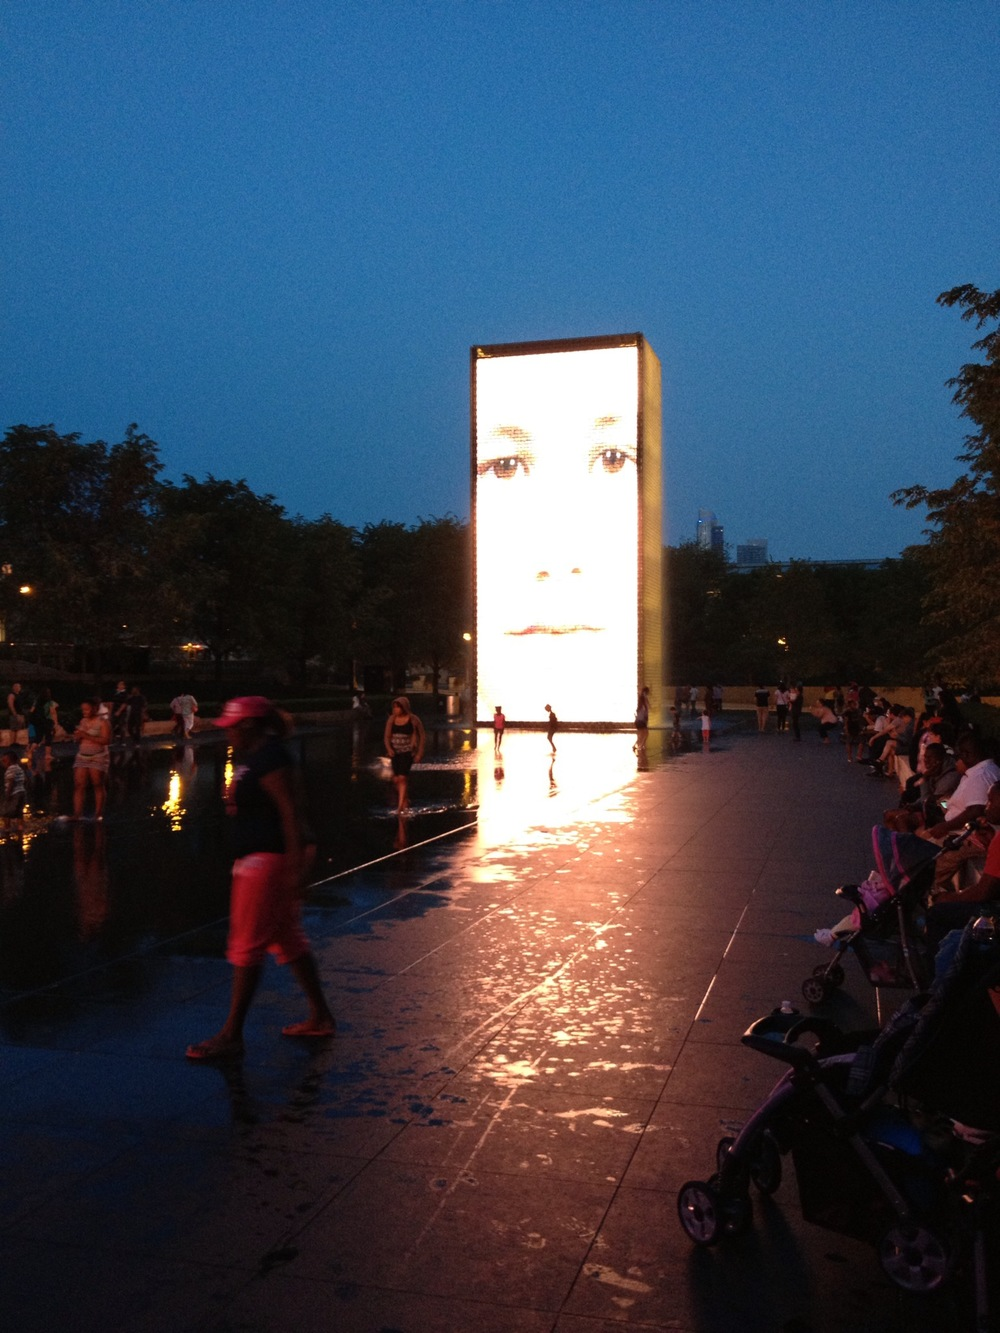 Another image of the Crown Fountain at night...it looks almost like a huge flame that lights up the wading pool.  It is just one big happy campfire in the middle of the city that you share with strangers.